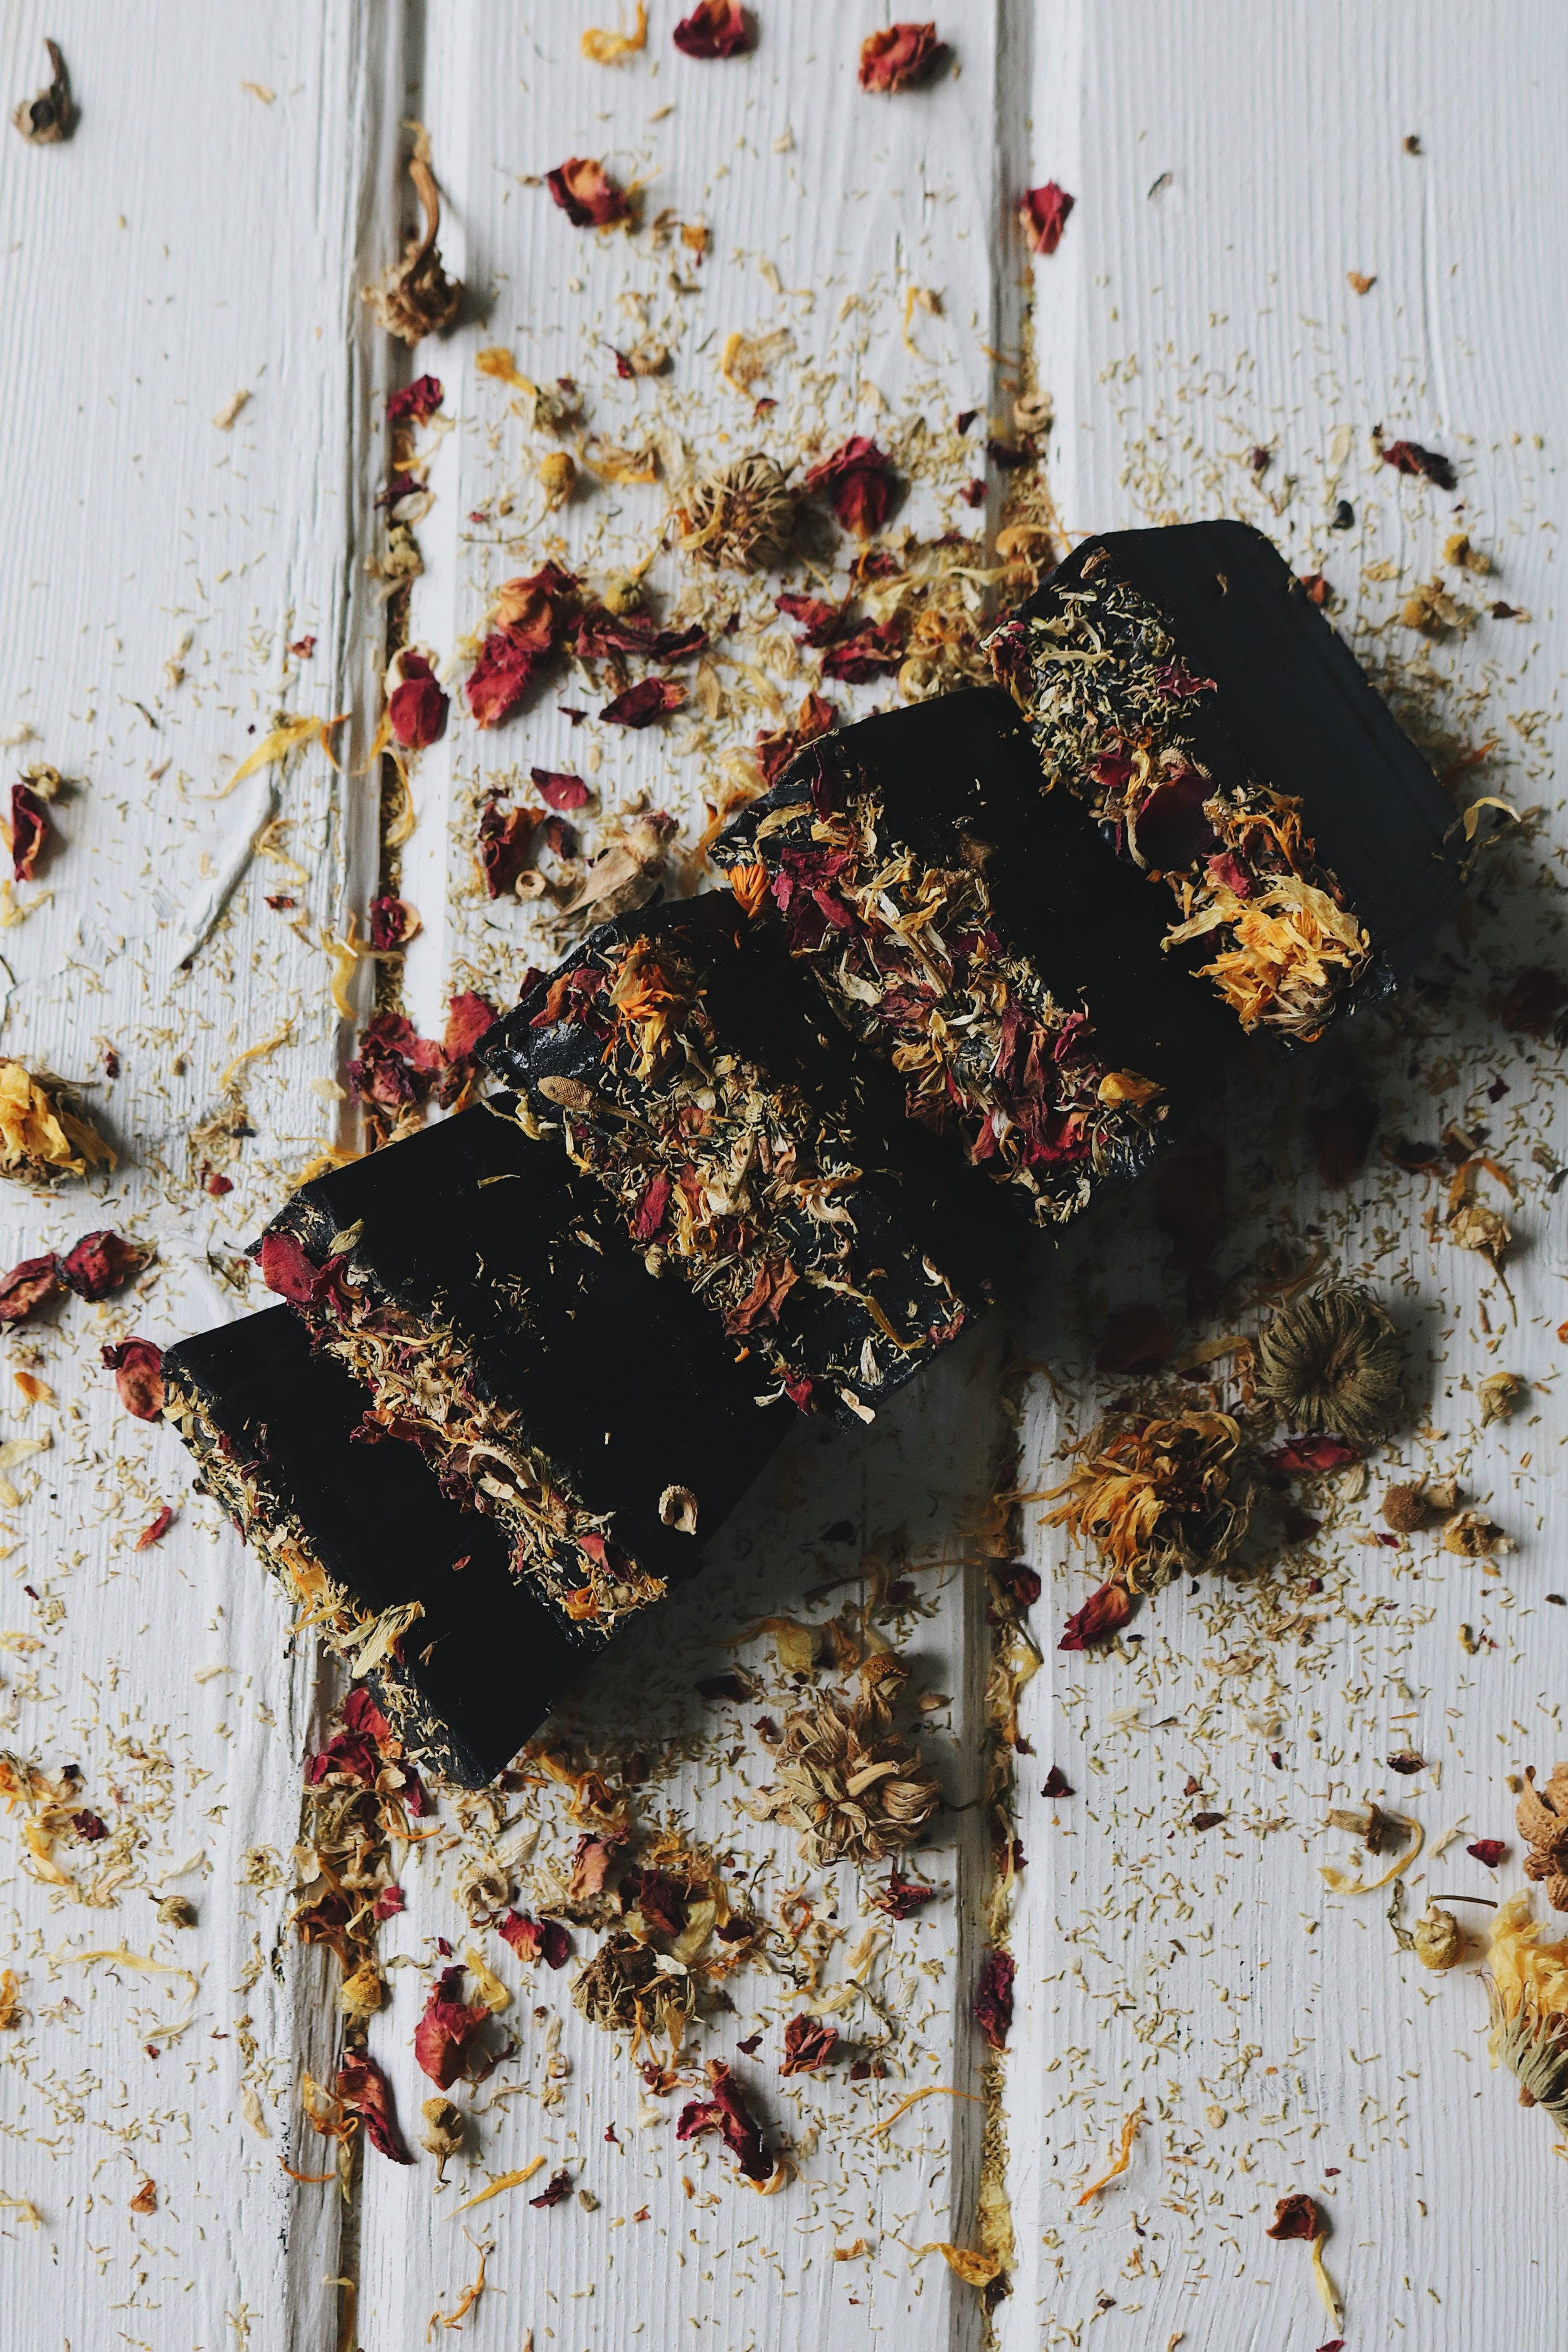 Herbal Interests | Practical Magic Black Soap - Under A Tin Roof Blog